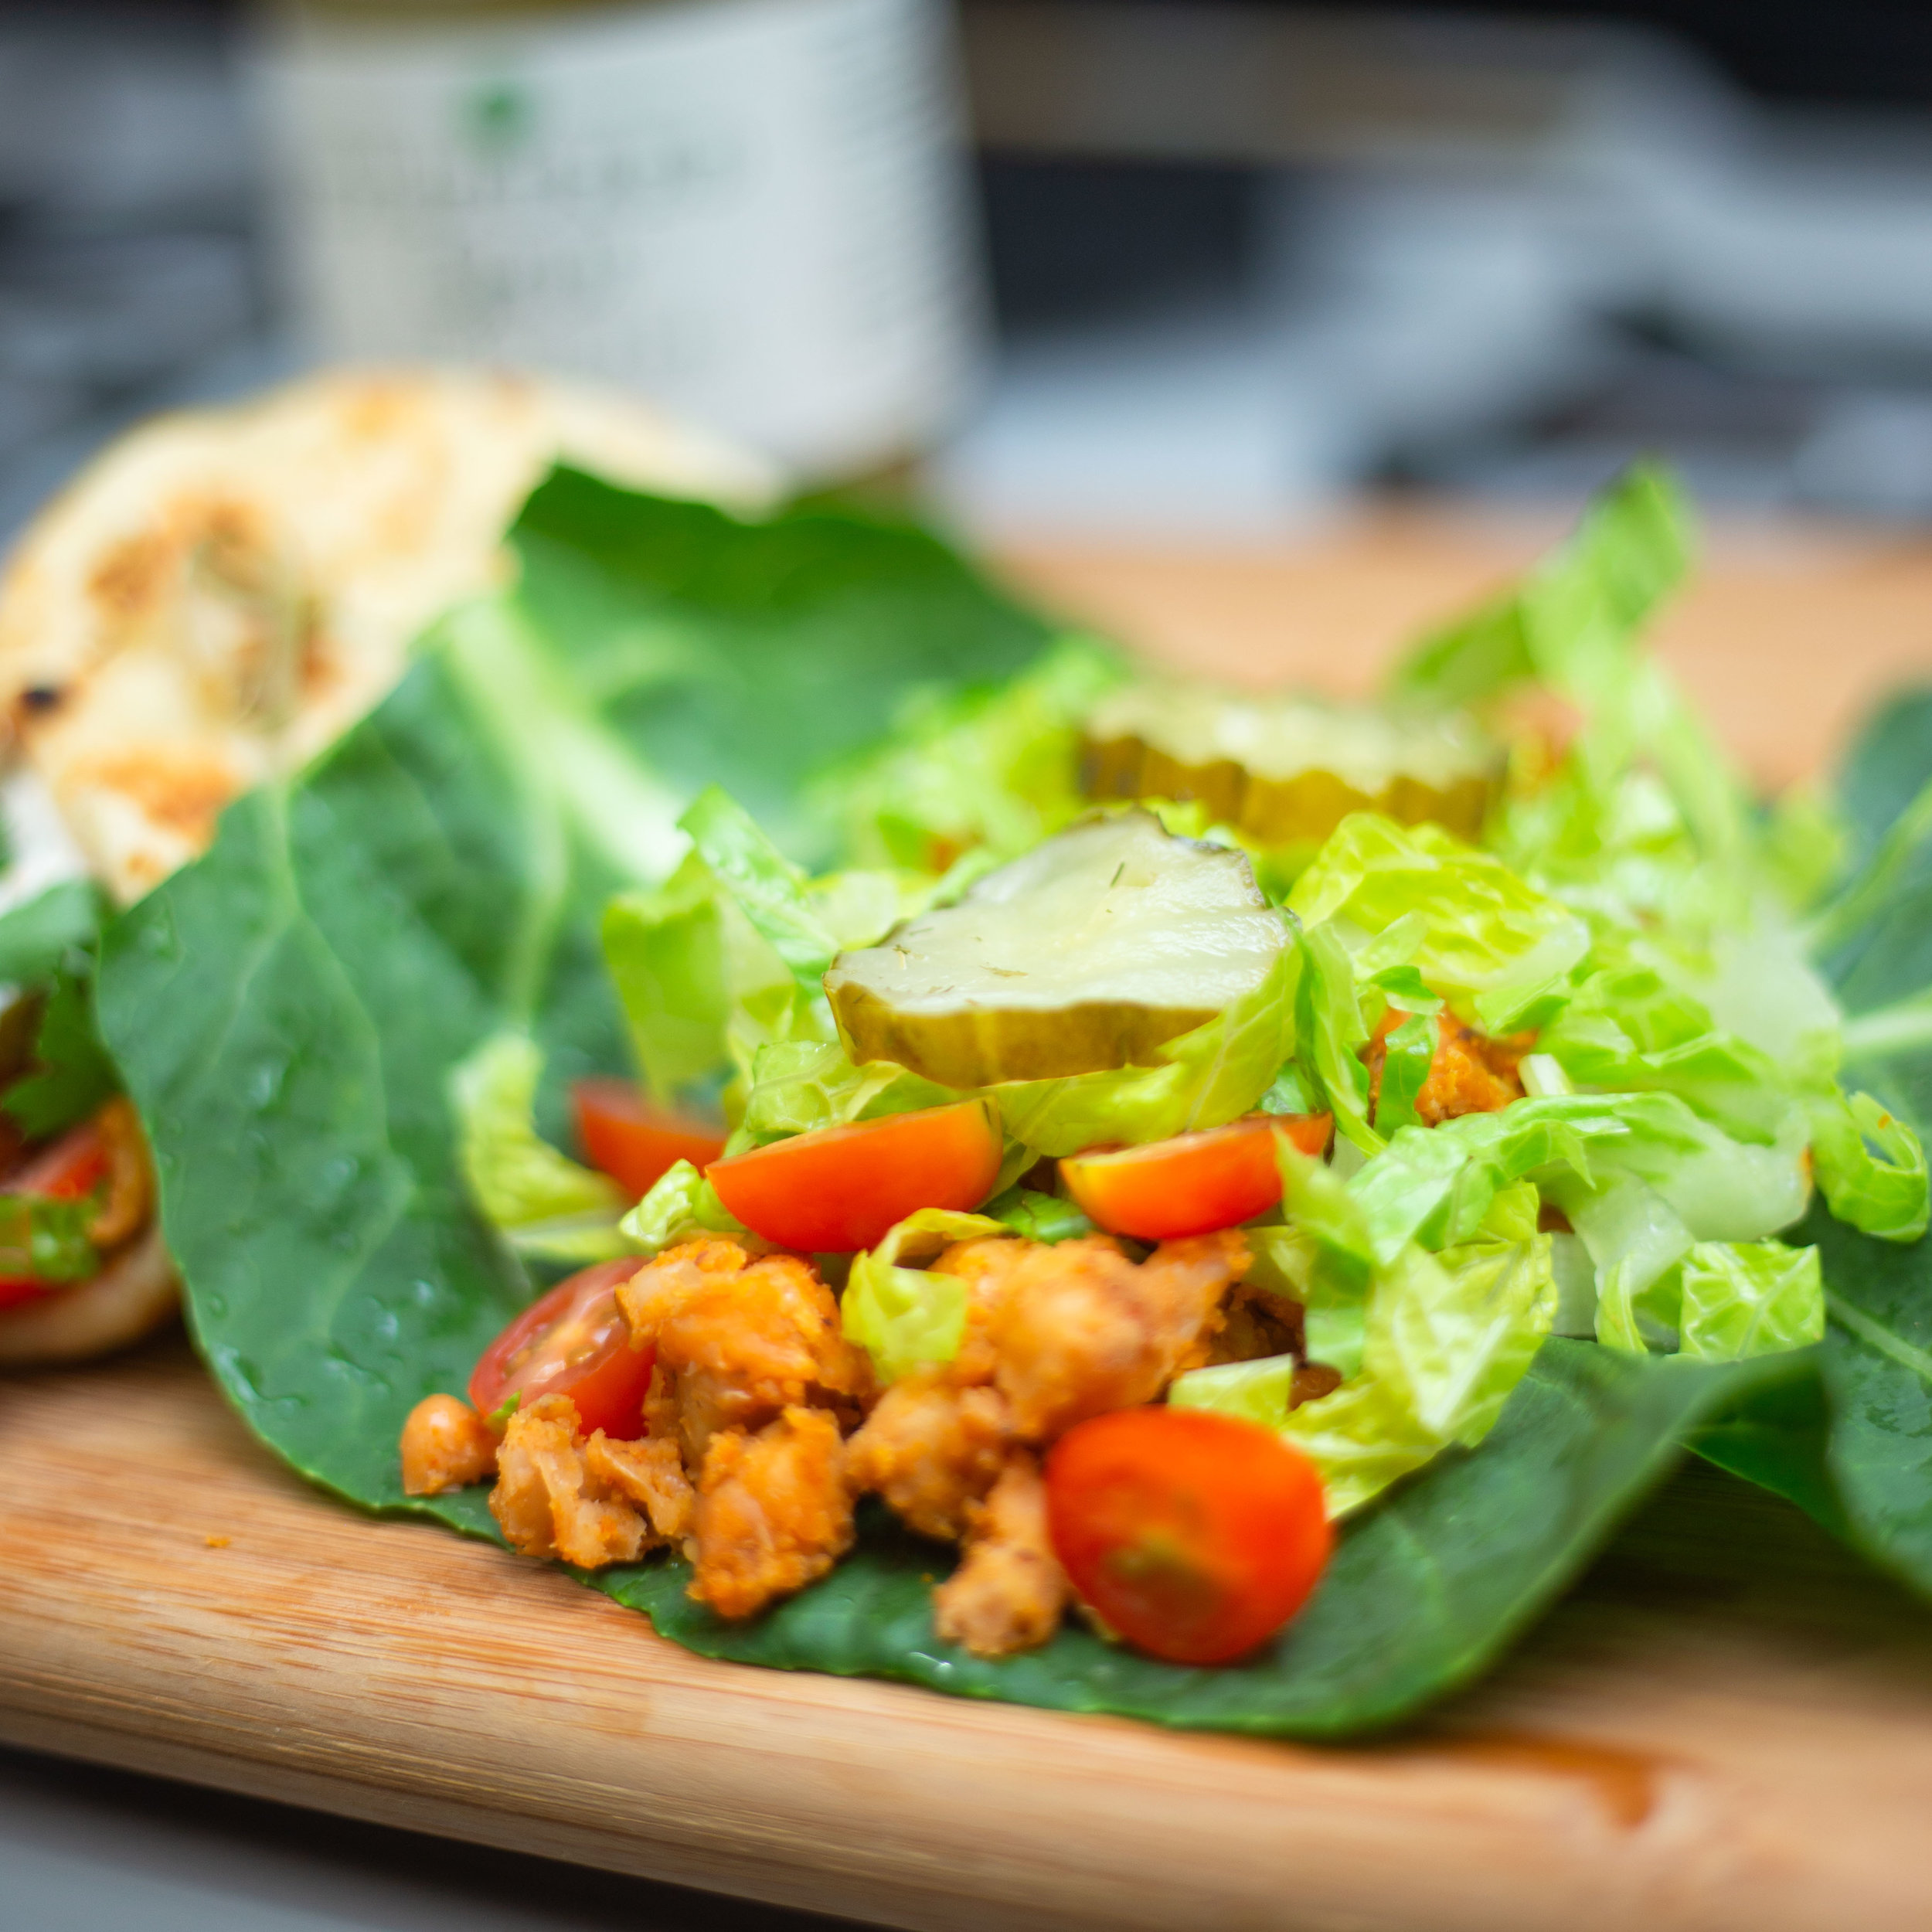 Gut Healthy, Vegan Buffalo Chickpea Wraps | Low Carb Buffalo Chickpea Wrap Recipe with Fermented Dill Pickles